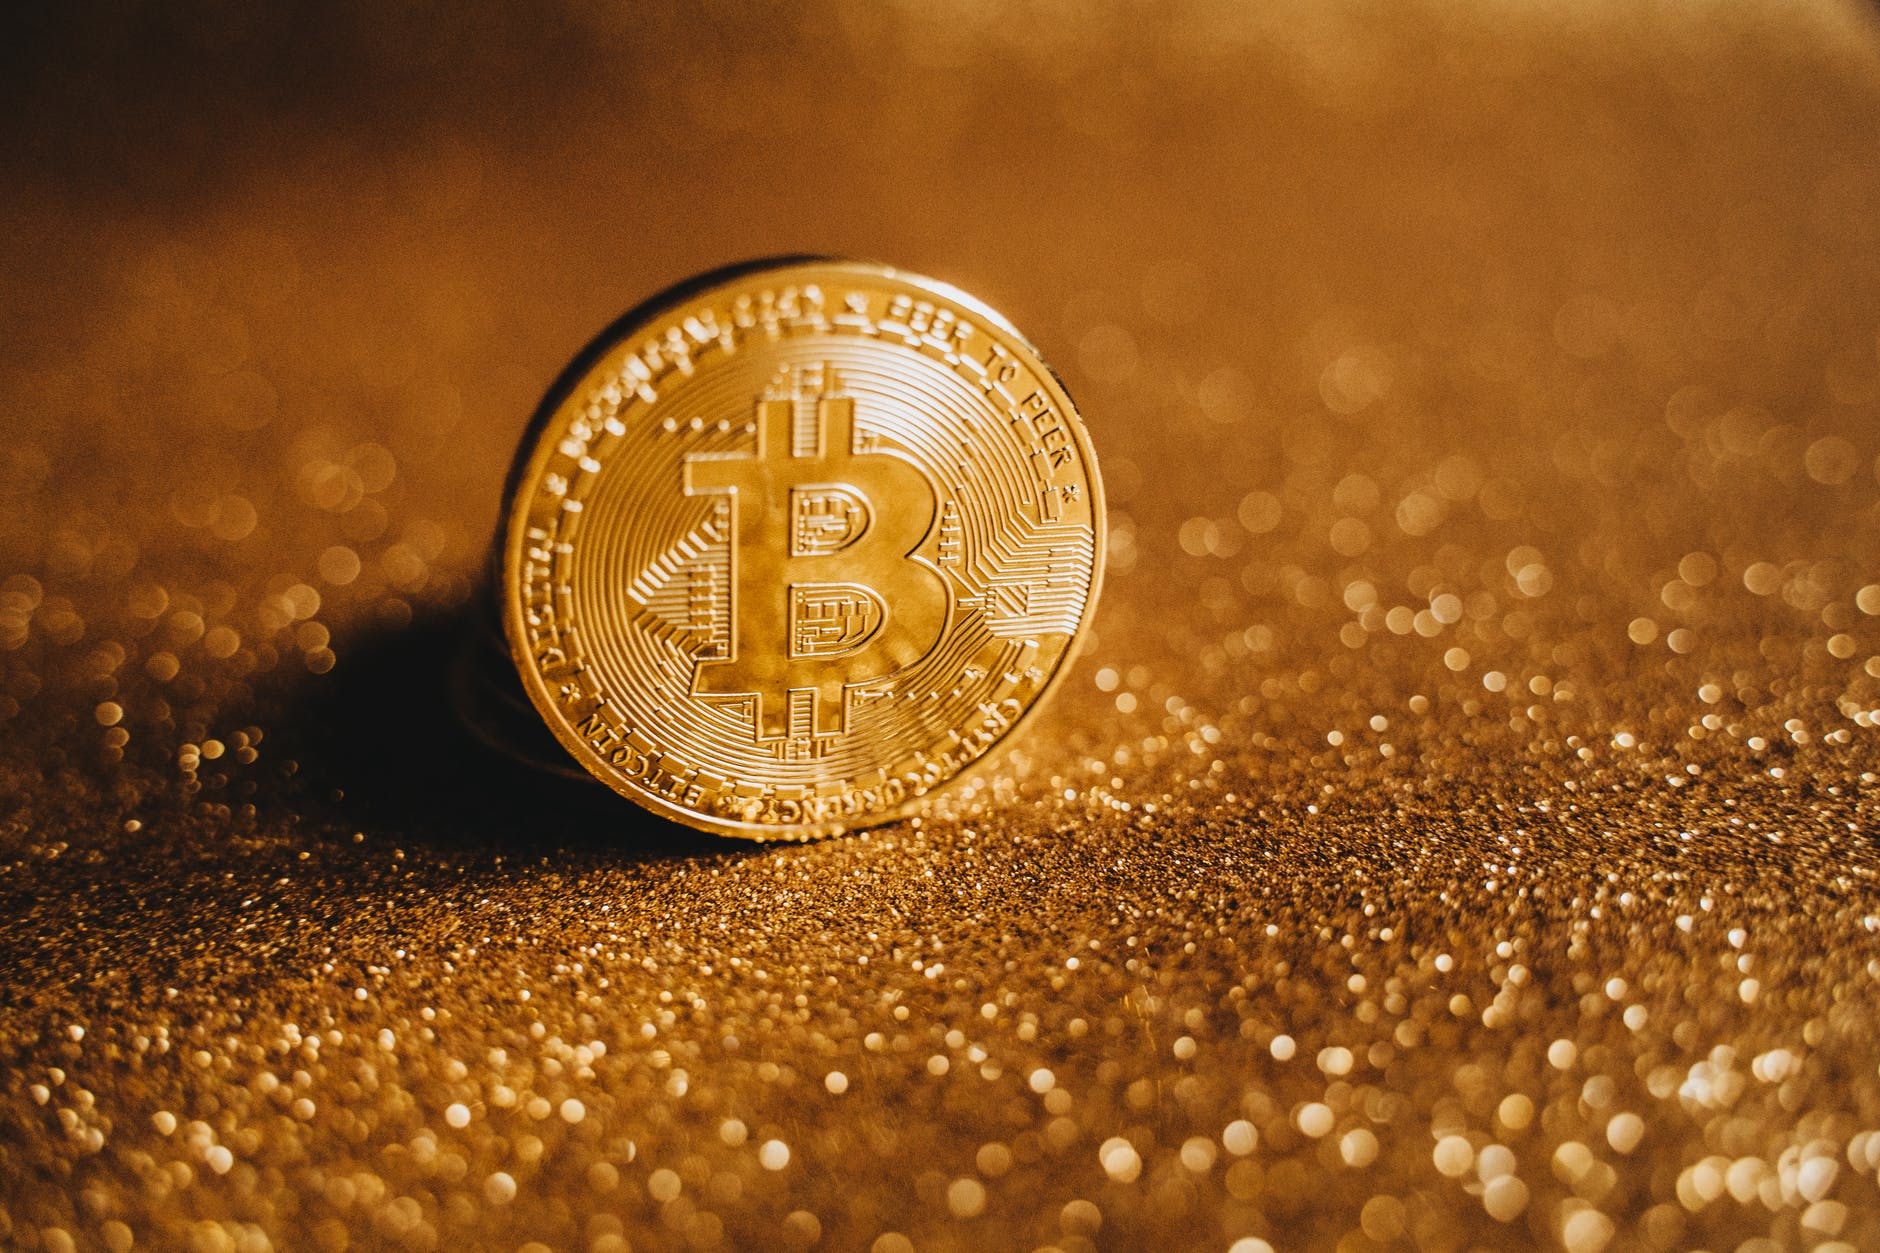 BTC Bitcoin Growing Toward $45K Resistance, Sustained at $40K